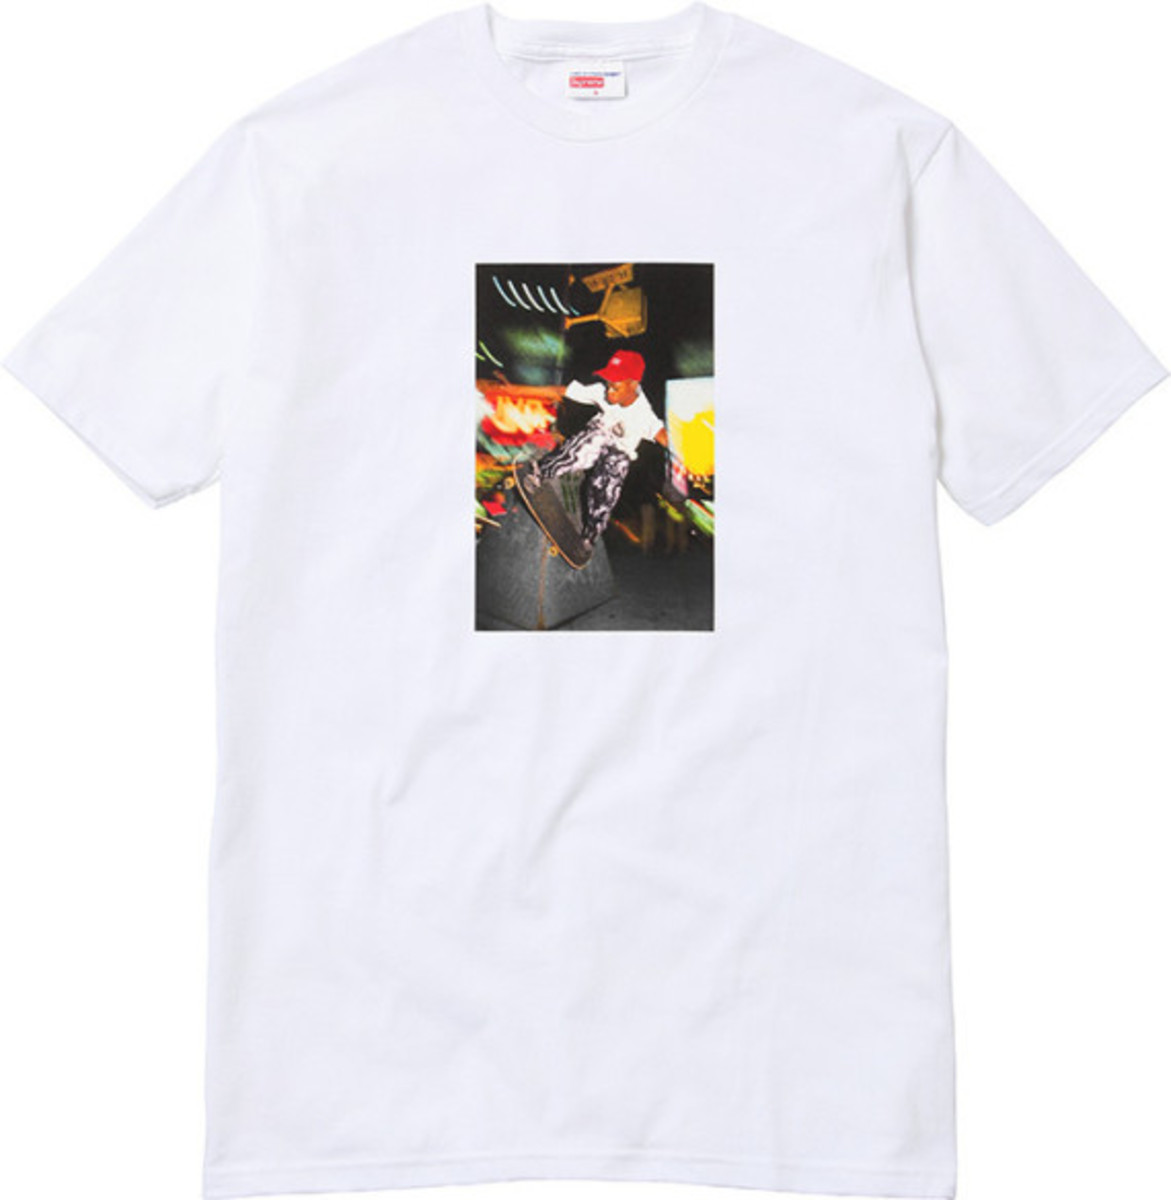 supreme-x-comme-des-garcon-shirt-2014-capsule-collection-harold-hunter-jason-dill-21